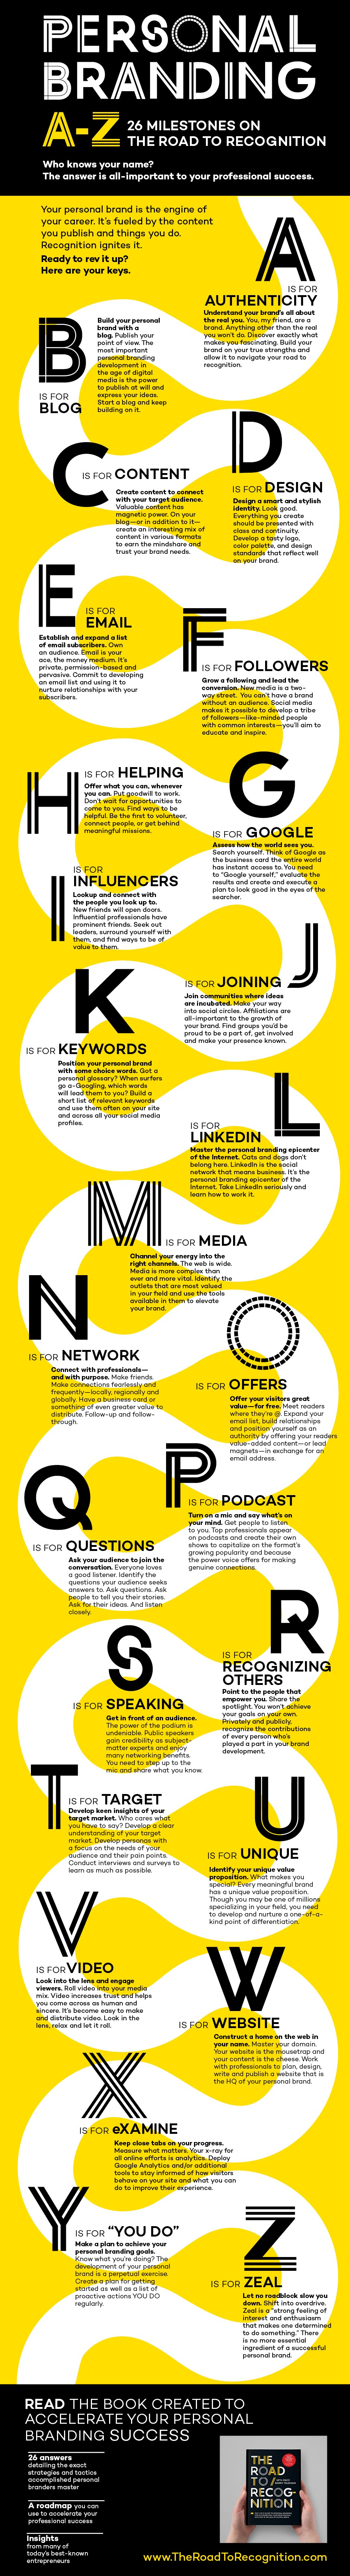 Personal Branding A to Z - #infographic